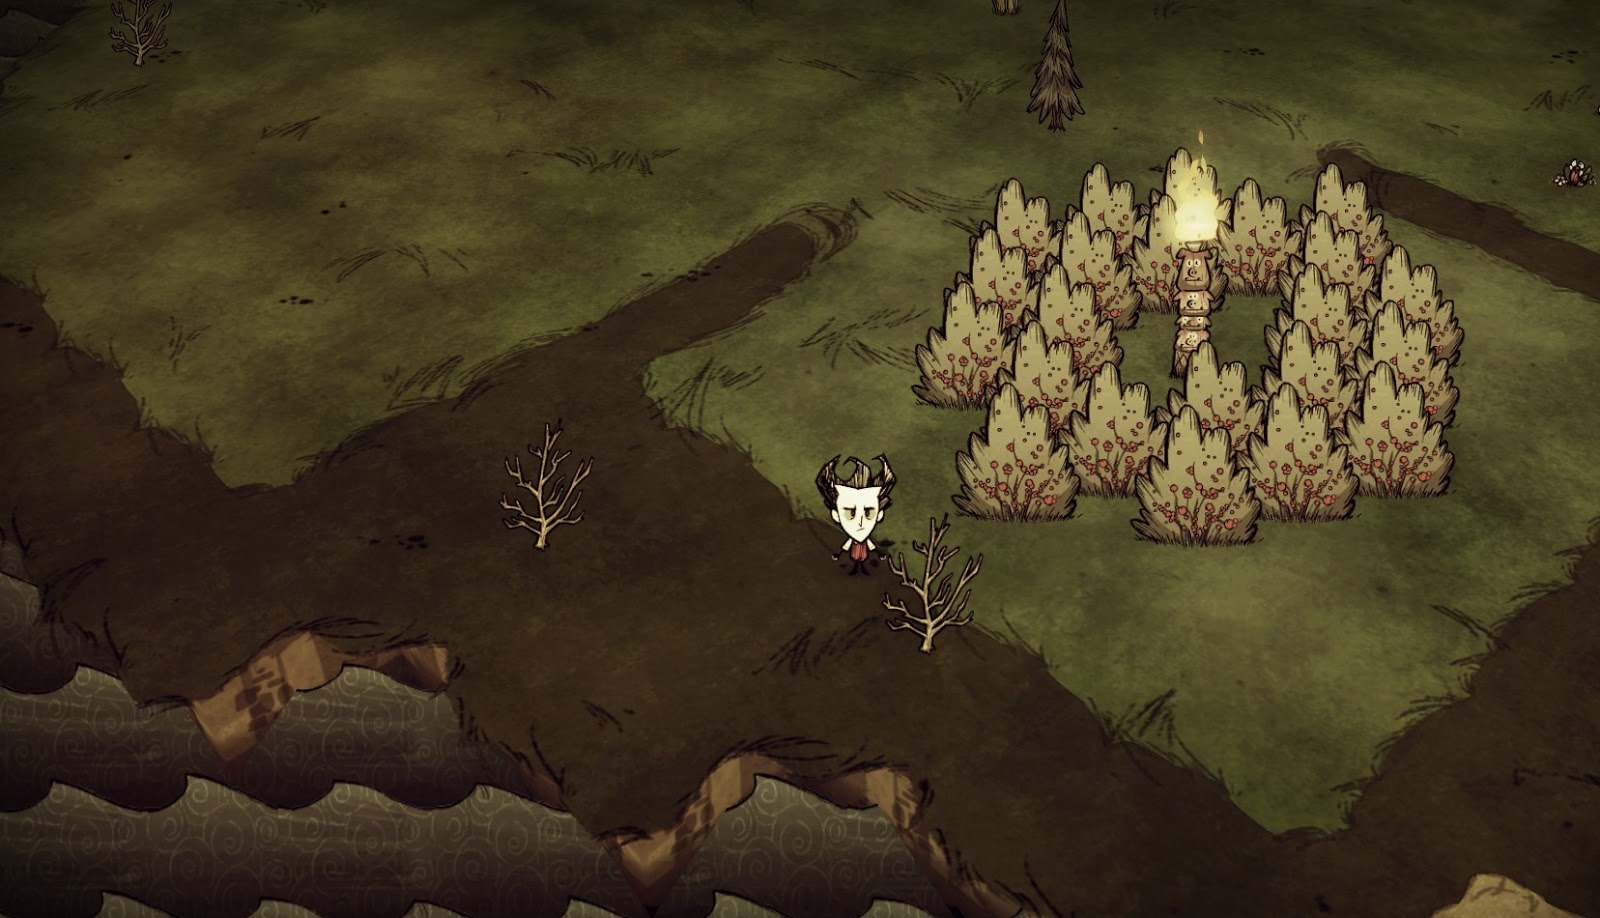 donu0027t starve ining rod dont starve maxwells door how to get nightmare fuel in donu0027t starve wooden thing dont starve donu0027t starve chapter 1 ... & How To :): donu0027t starve ining rod